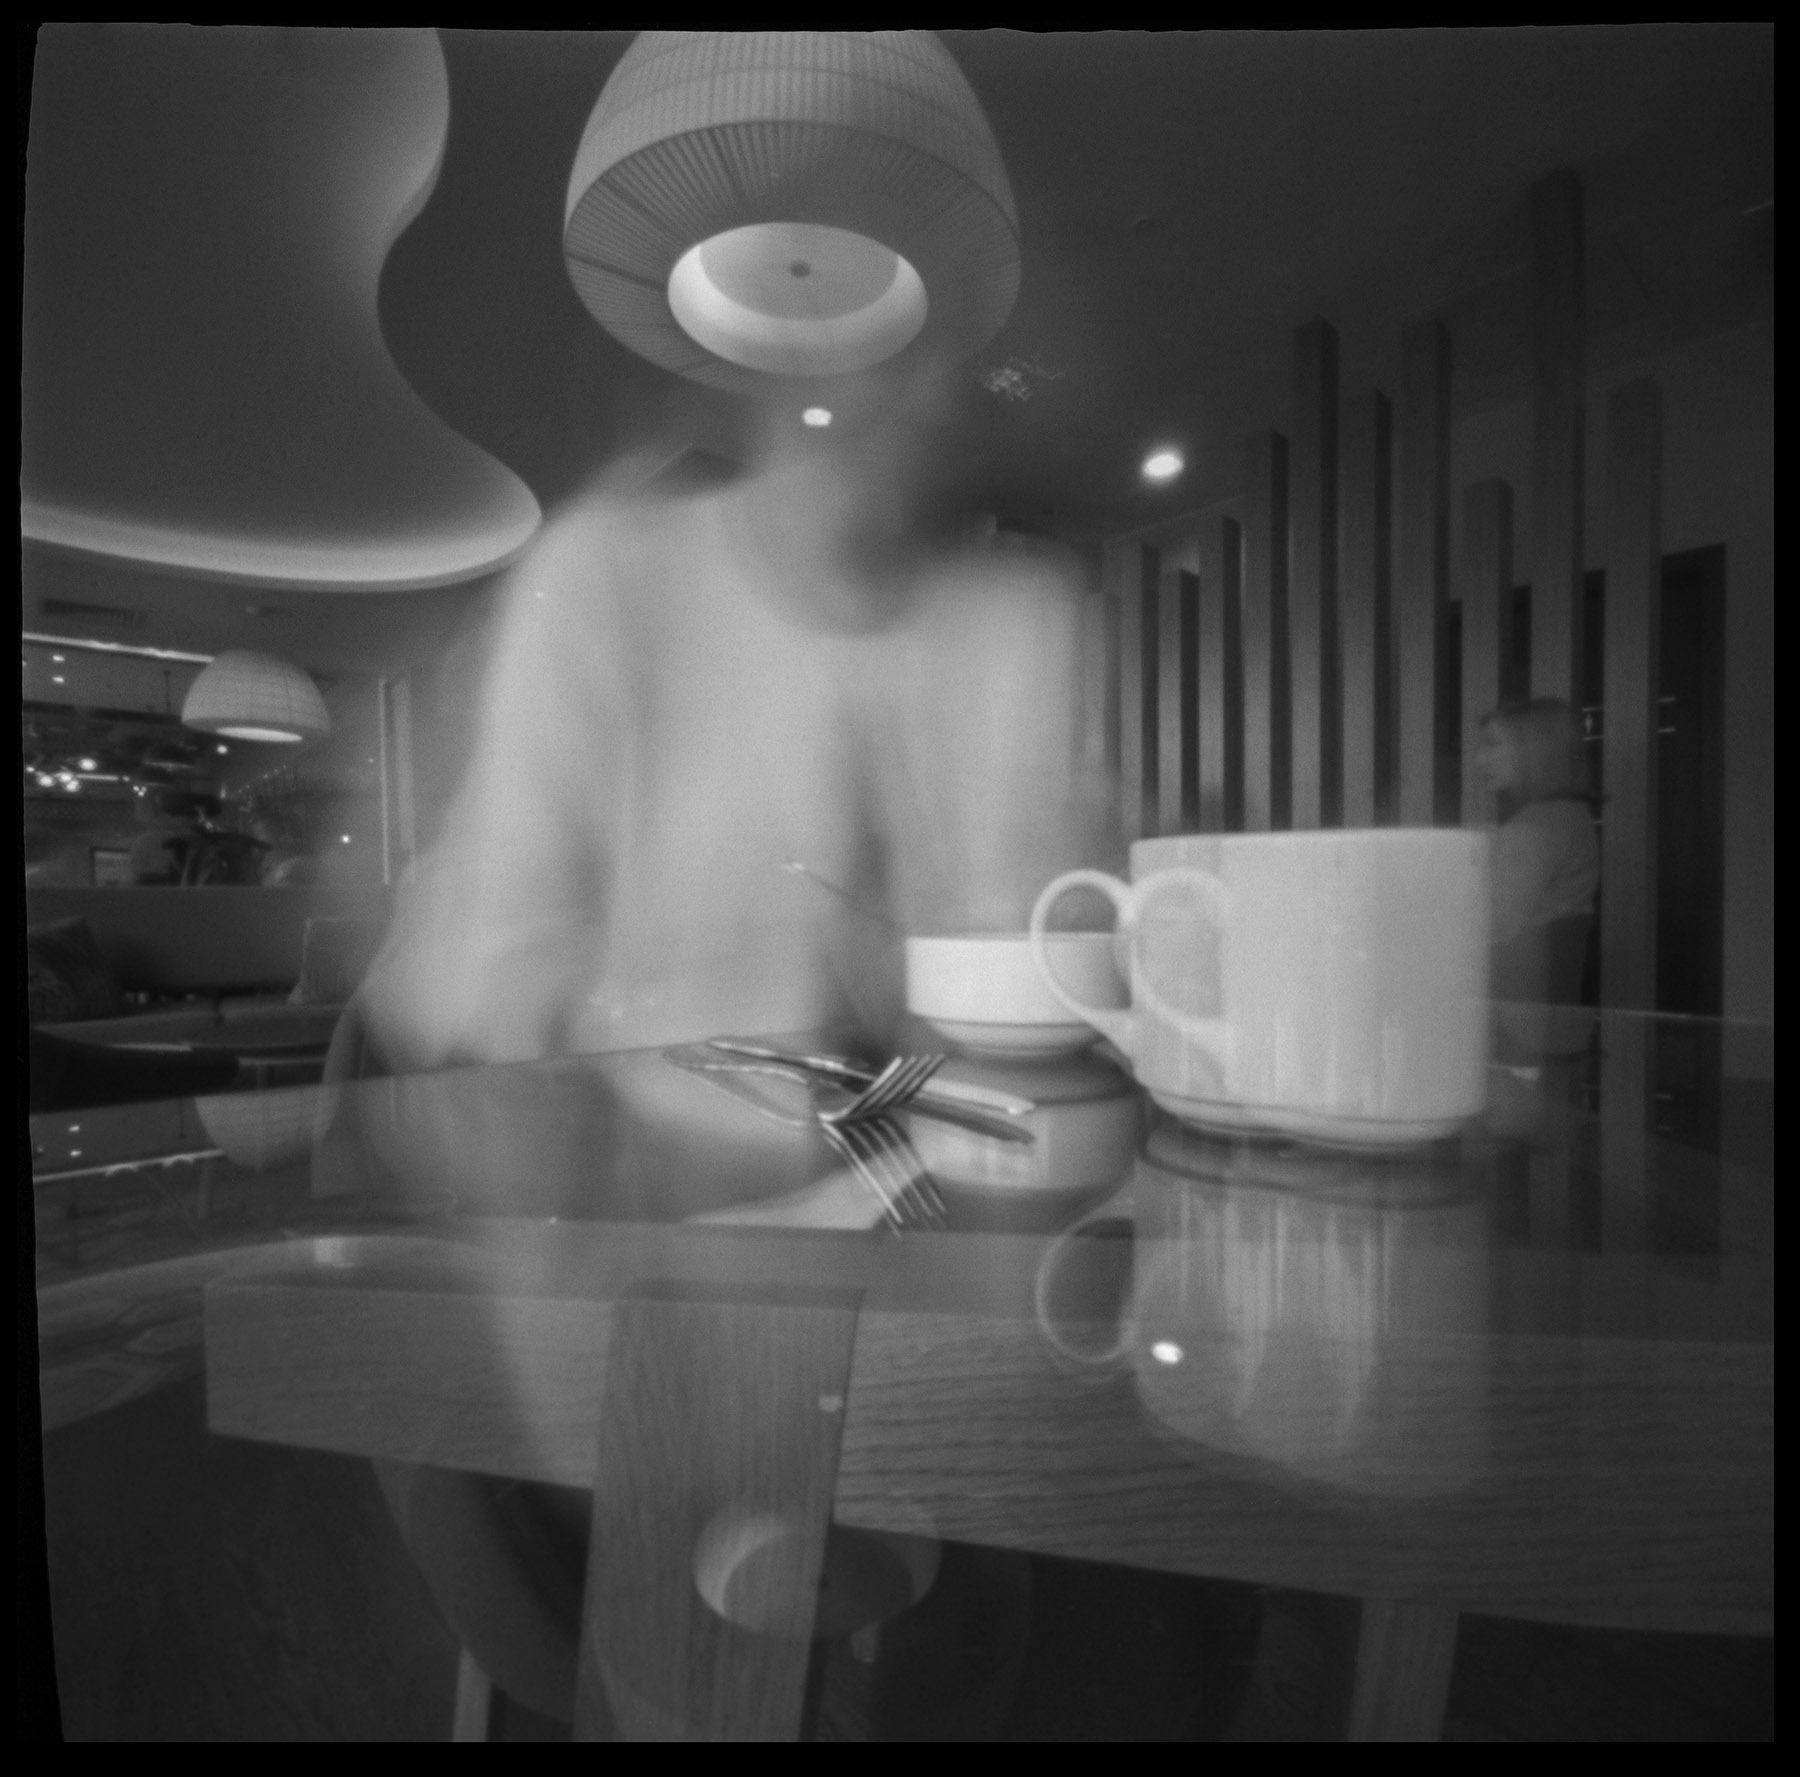 Nancy_Breslin_Pinhole Diary of Eating Out_6-2-17 Breakfast at the Hampton Hilton Waterloo 2 minutes_3.jpg